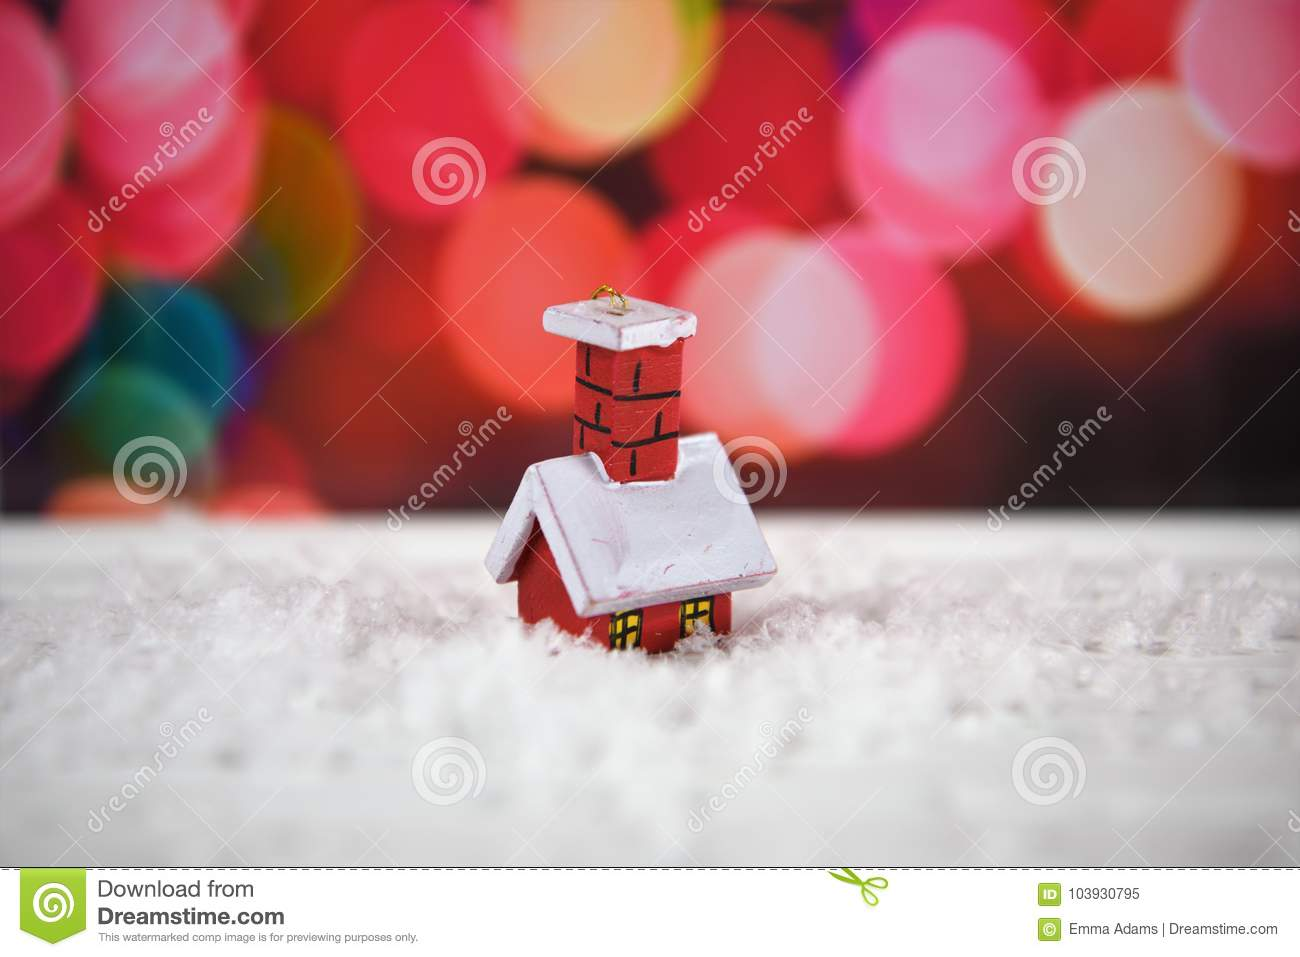 Warm Color Christmas Photography Image With Cute Little